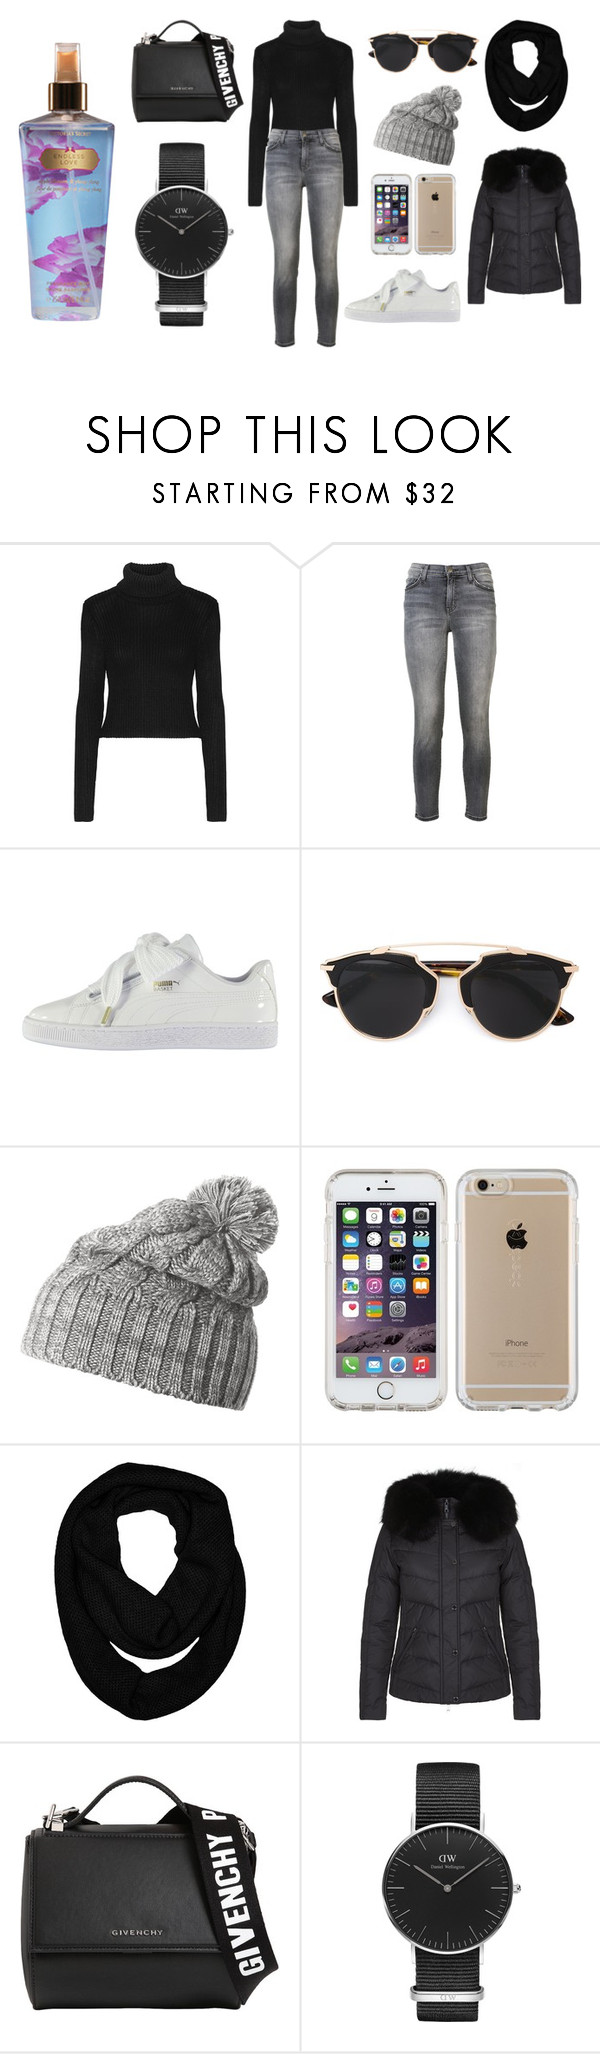 """""""Sans titre #3503"""" by merveille67120 ❤ liked on Polyvore featuring Alice + Olivia, Current/Elliott, Puma, Helly Hansen, Speck, Sofiacashmere, Givenchy, Daniel Wellington and Victoria's Secret"""